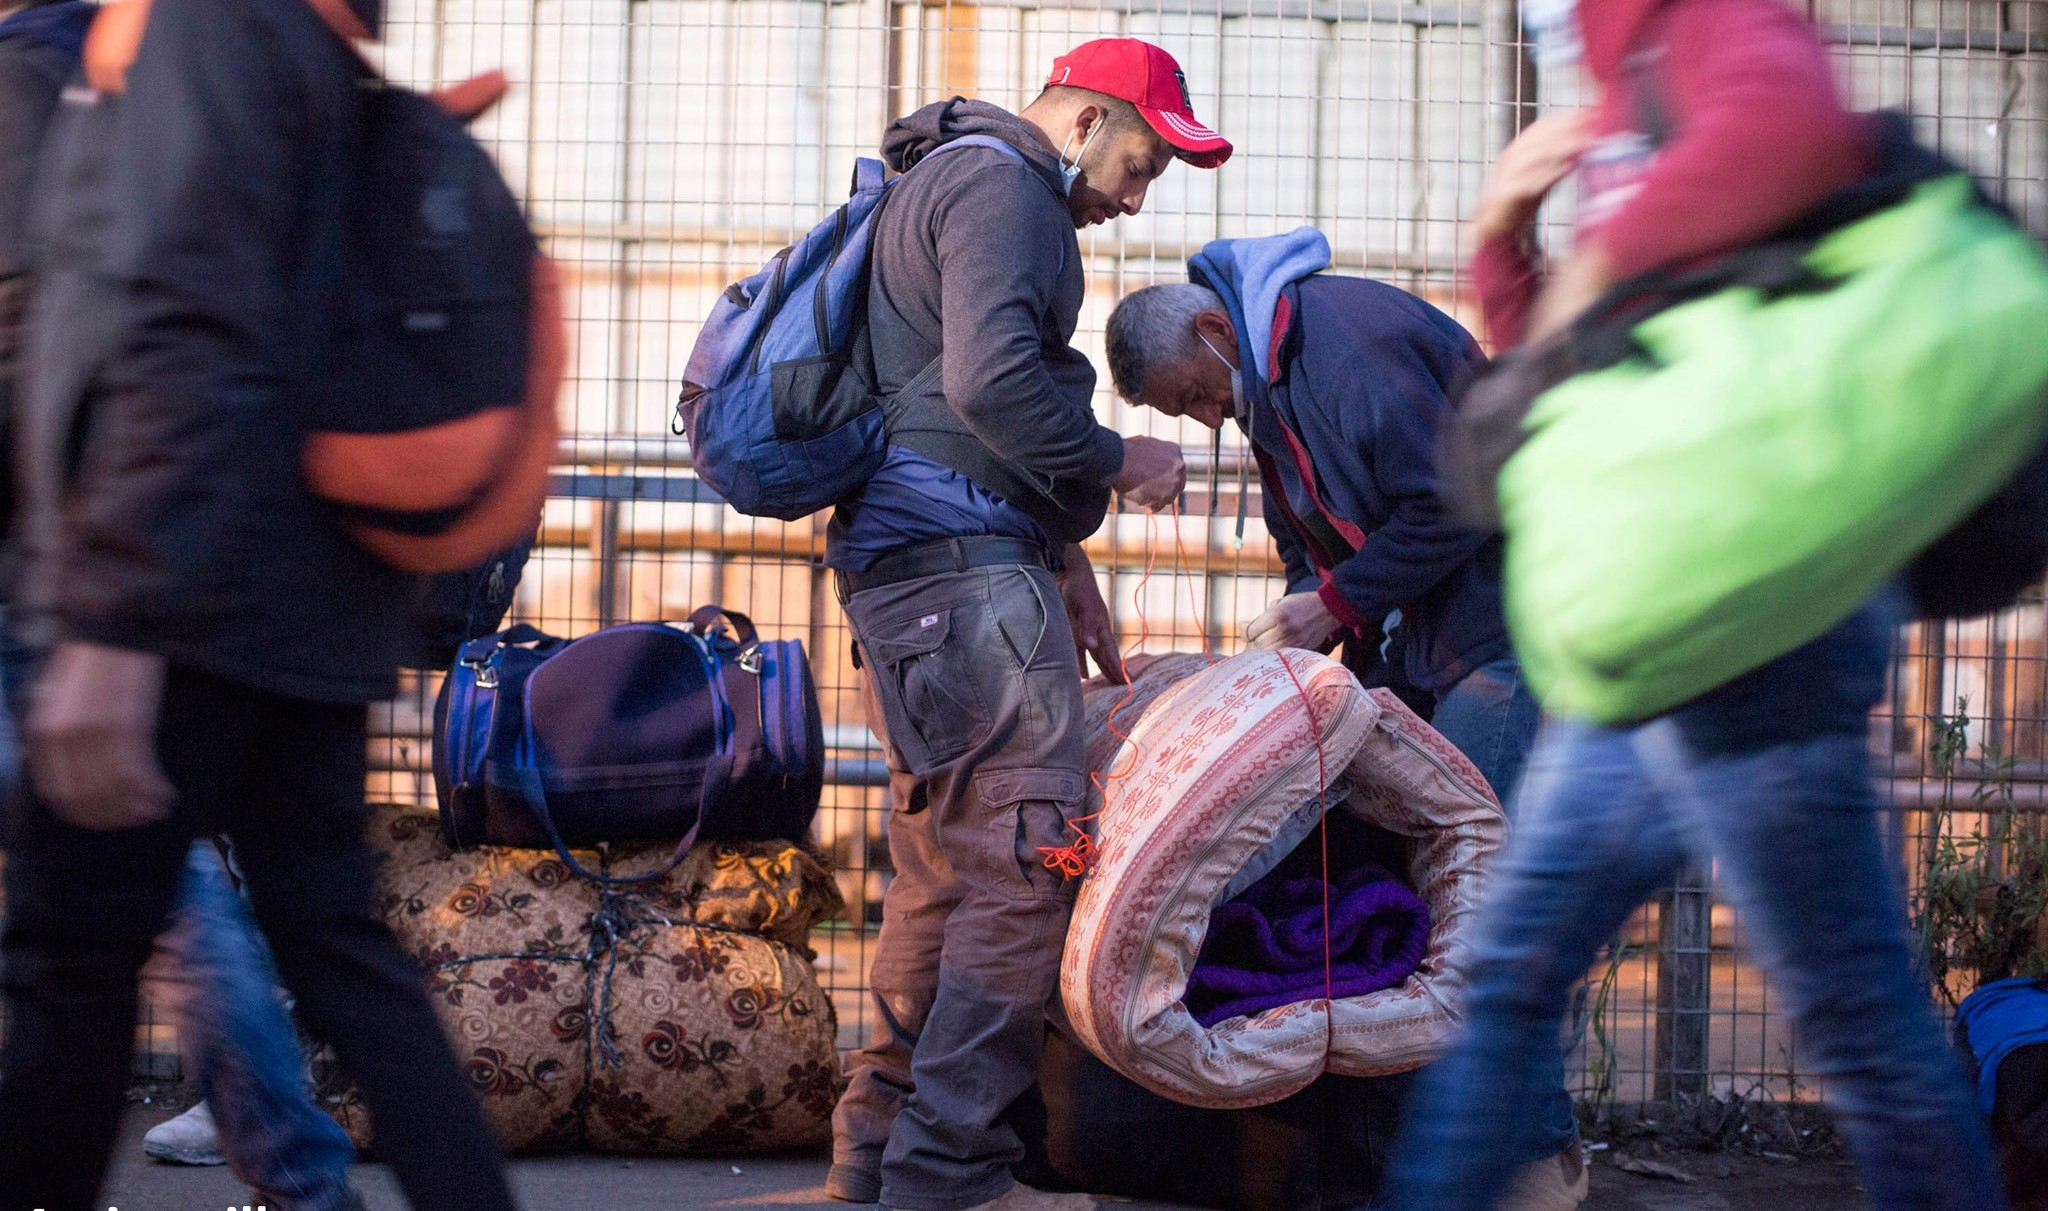 Palestinian workers from the occupied West Bank cross the Eyal Checkpoint, near Qalqilya, in the early morning hours to reach their workplaces in Israel – January 2021.